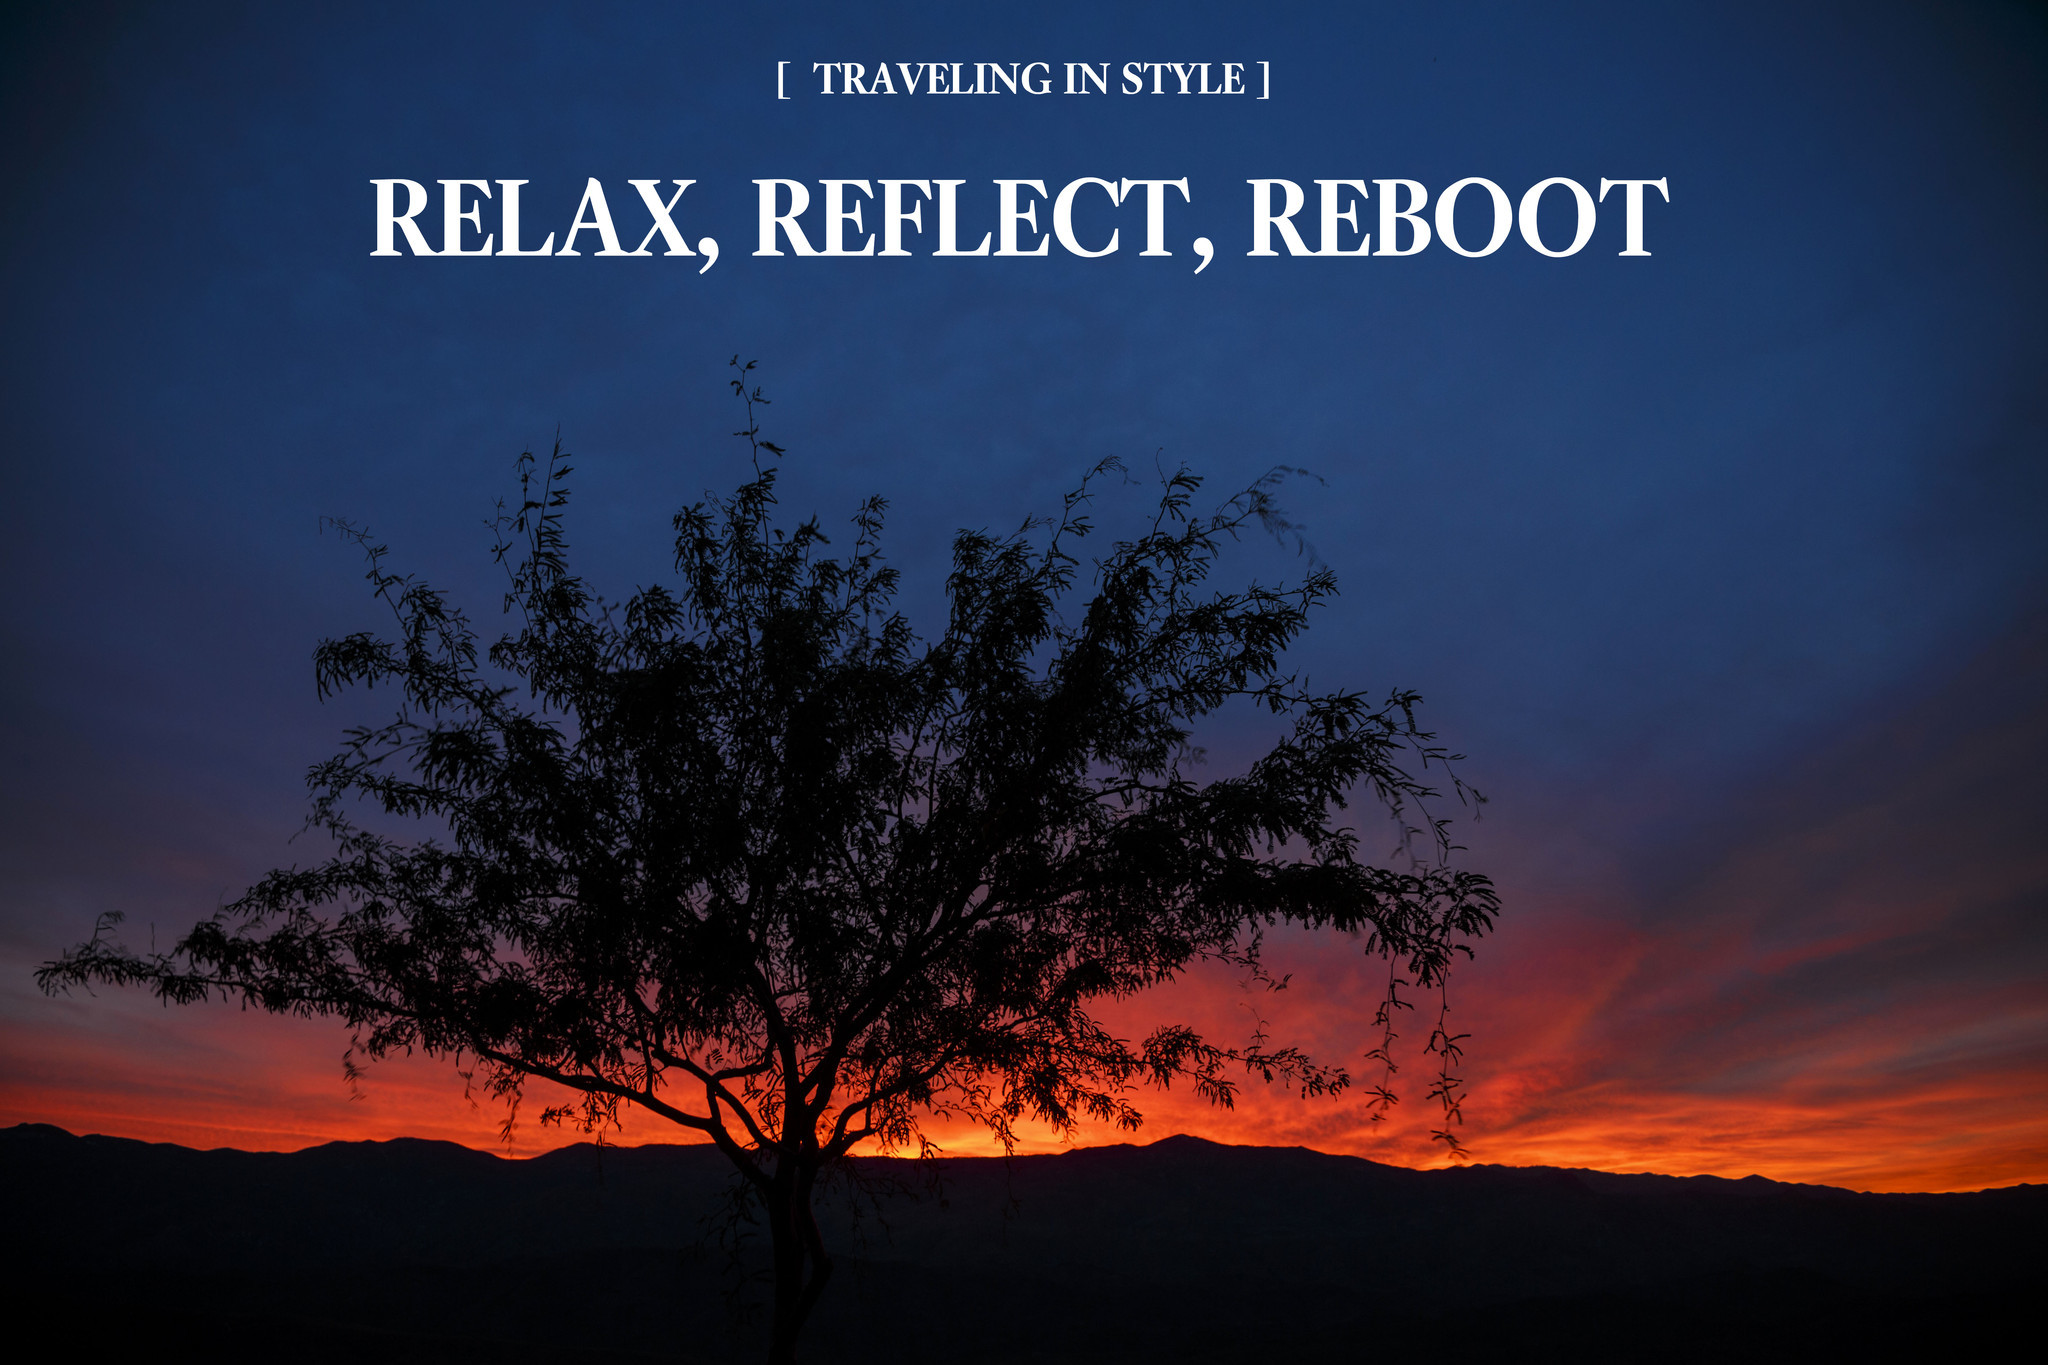 Traveling in style: relax, reflect, reboot